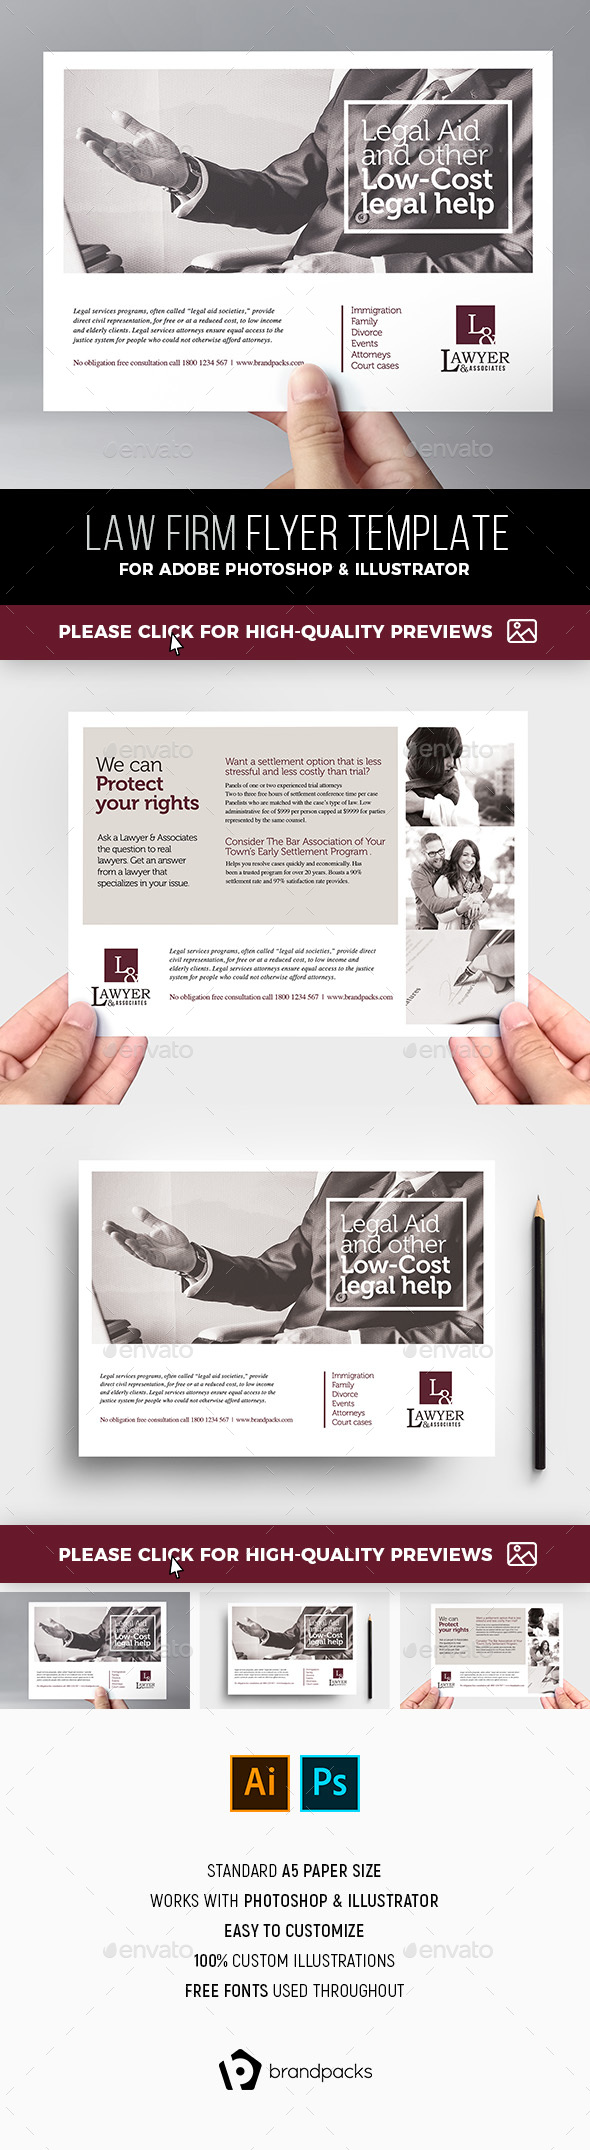 Law Firm Flyer Template - Corporate Flyers